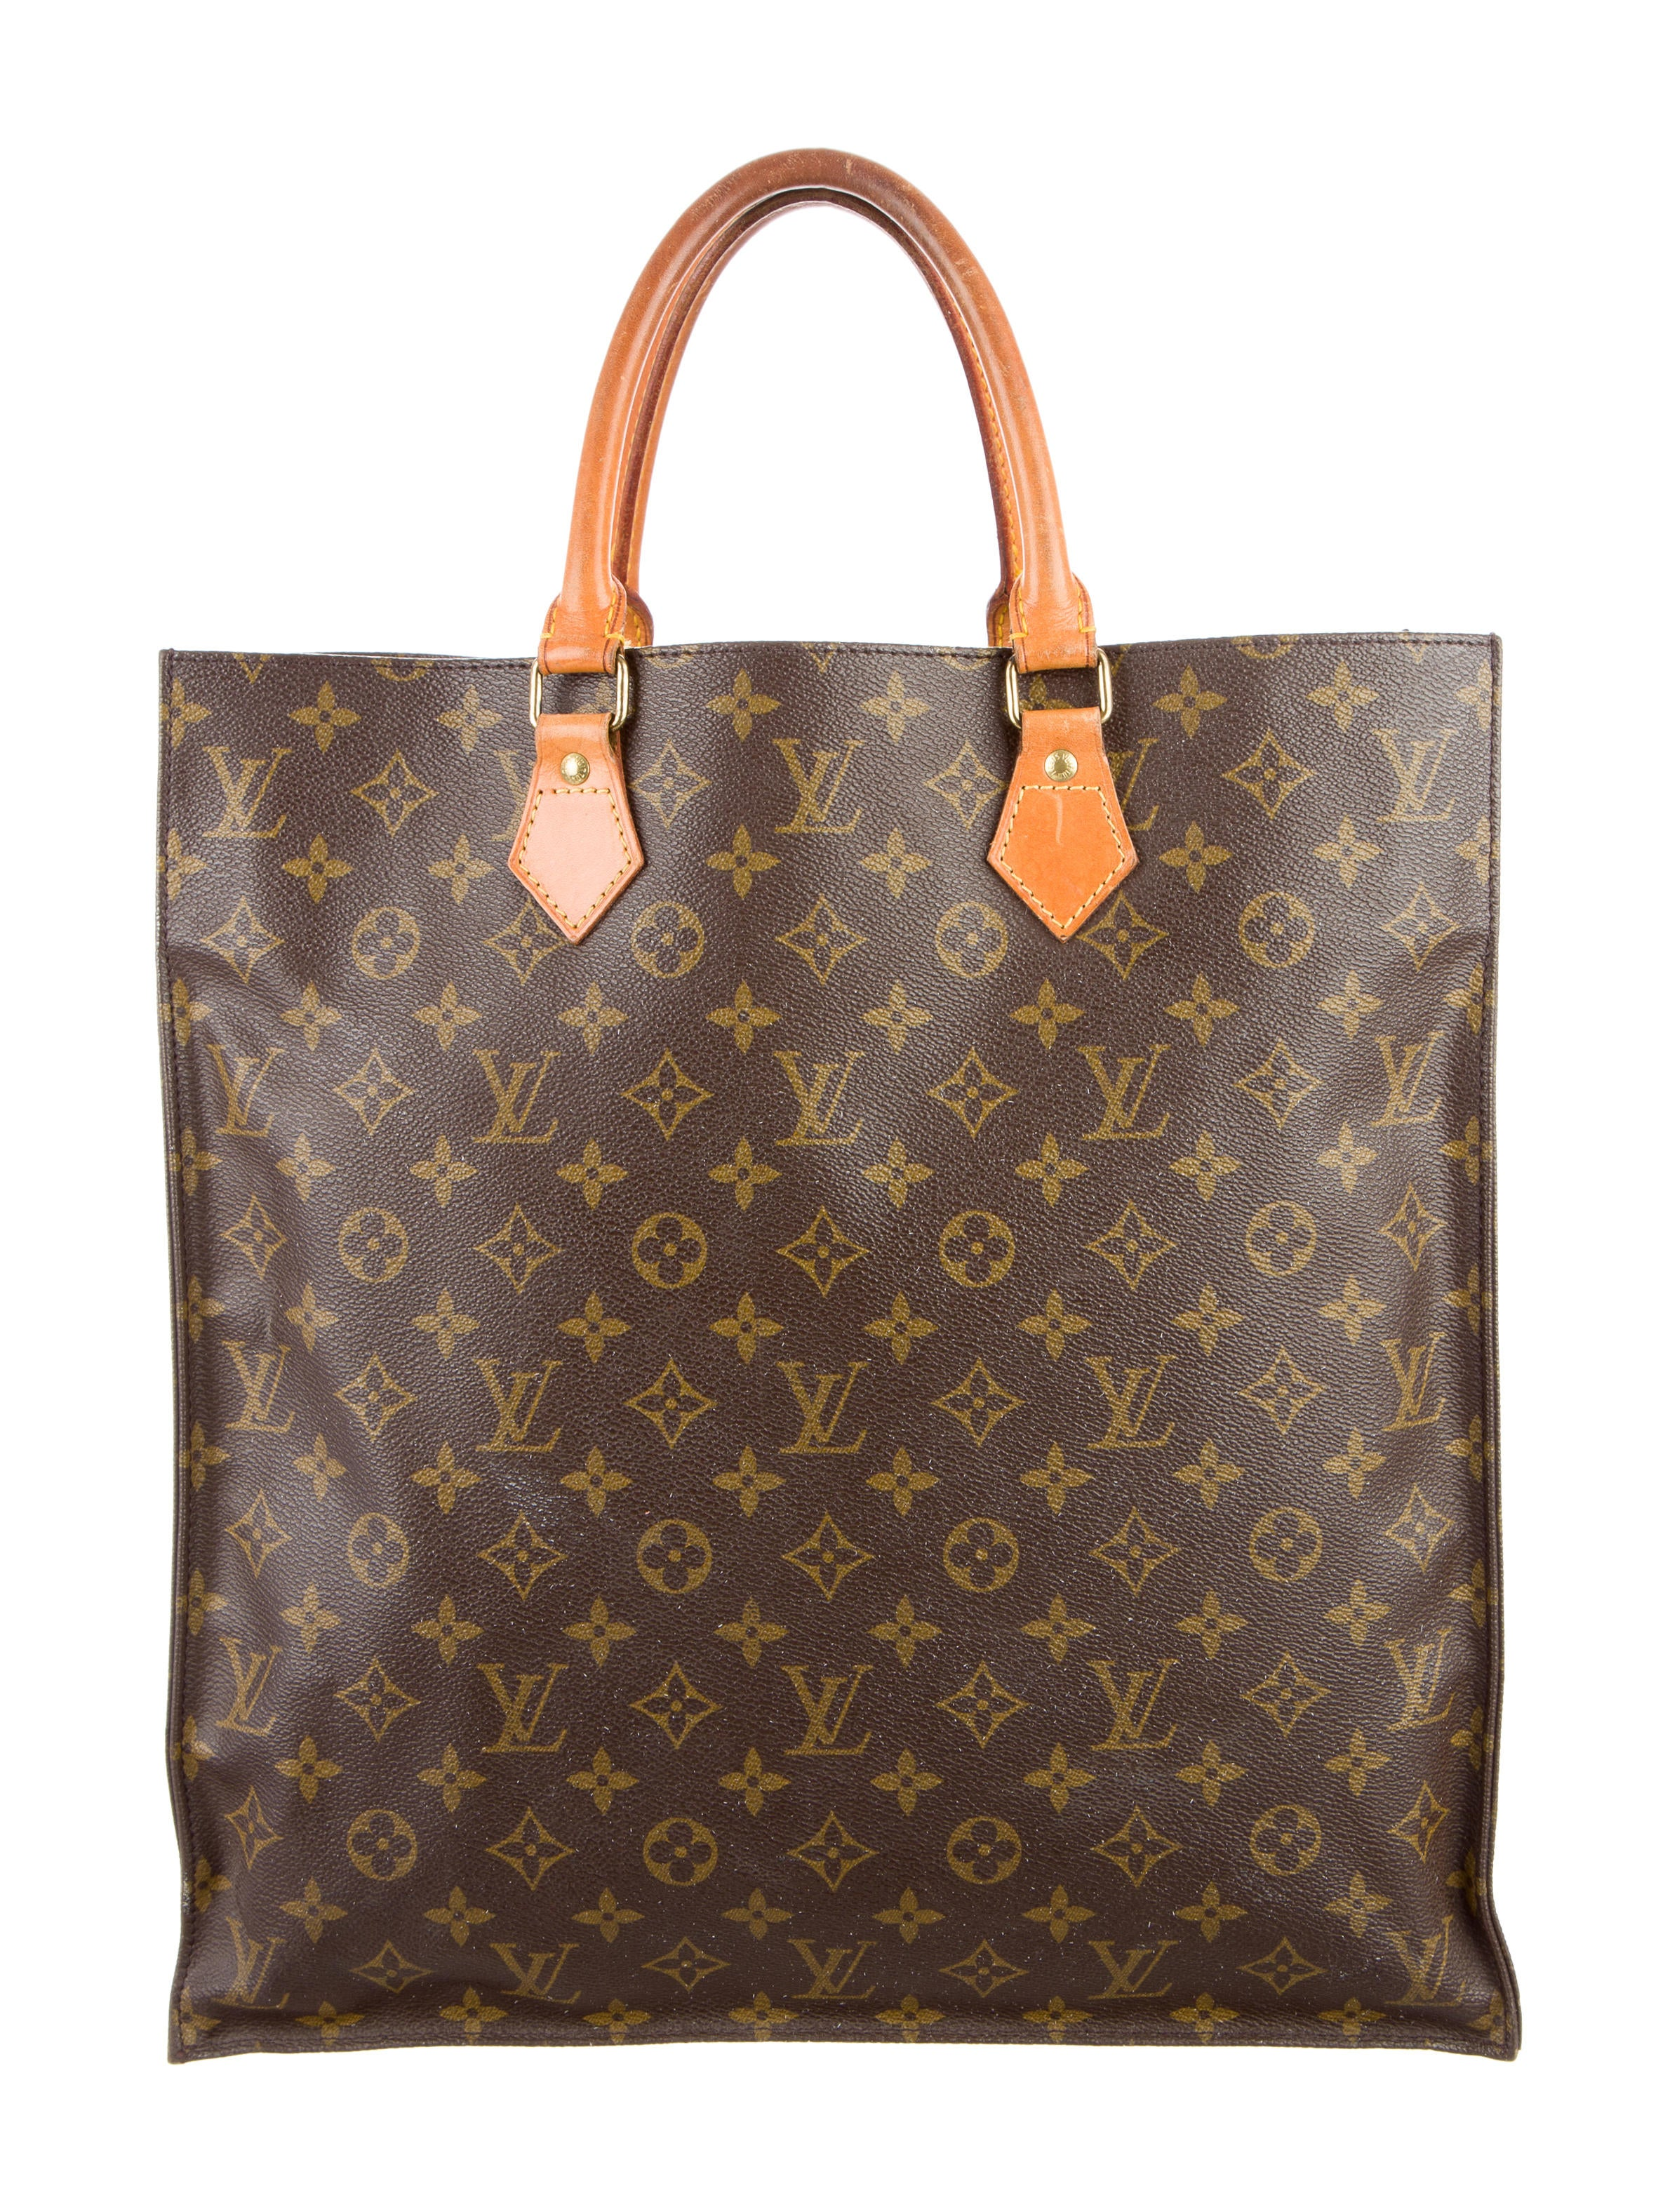 Louis vuitton monogram sac plat handbags lou106724 for Louis vuitton monogram miroir sac plat